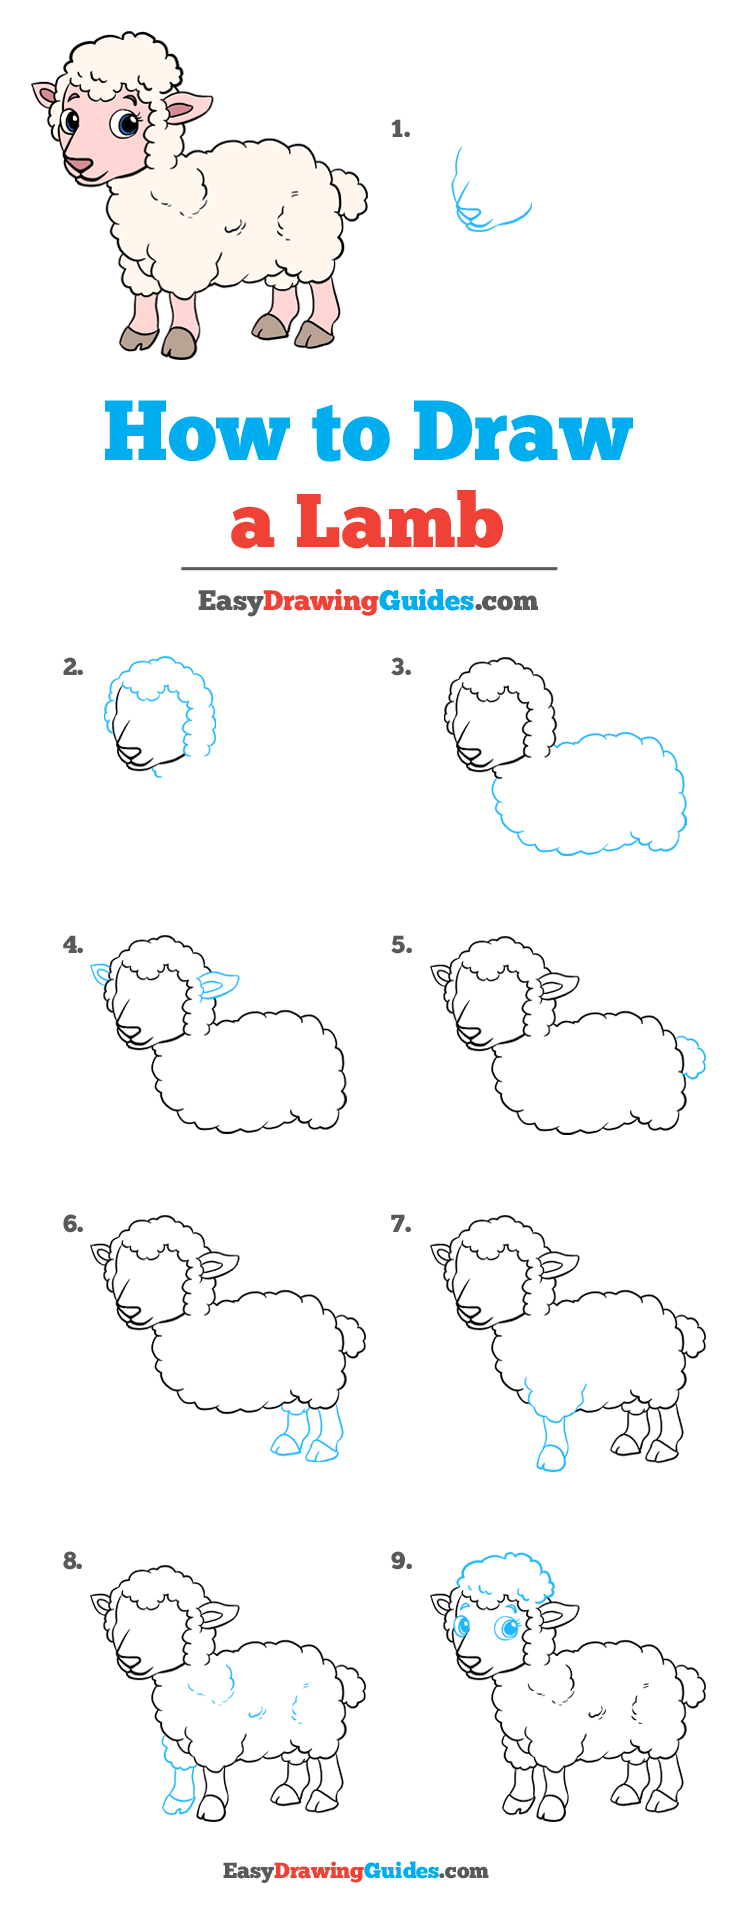 How to Draw a Lamb Step by Step Tutorial Image